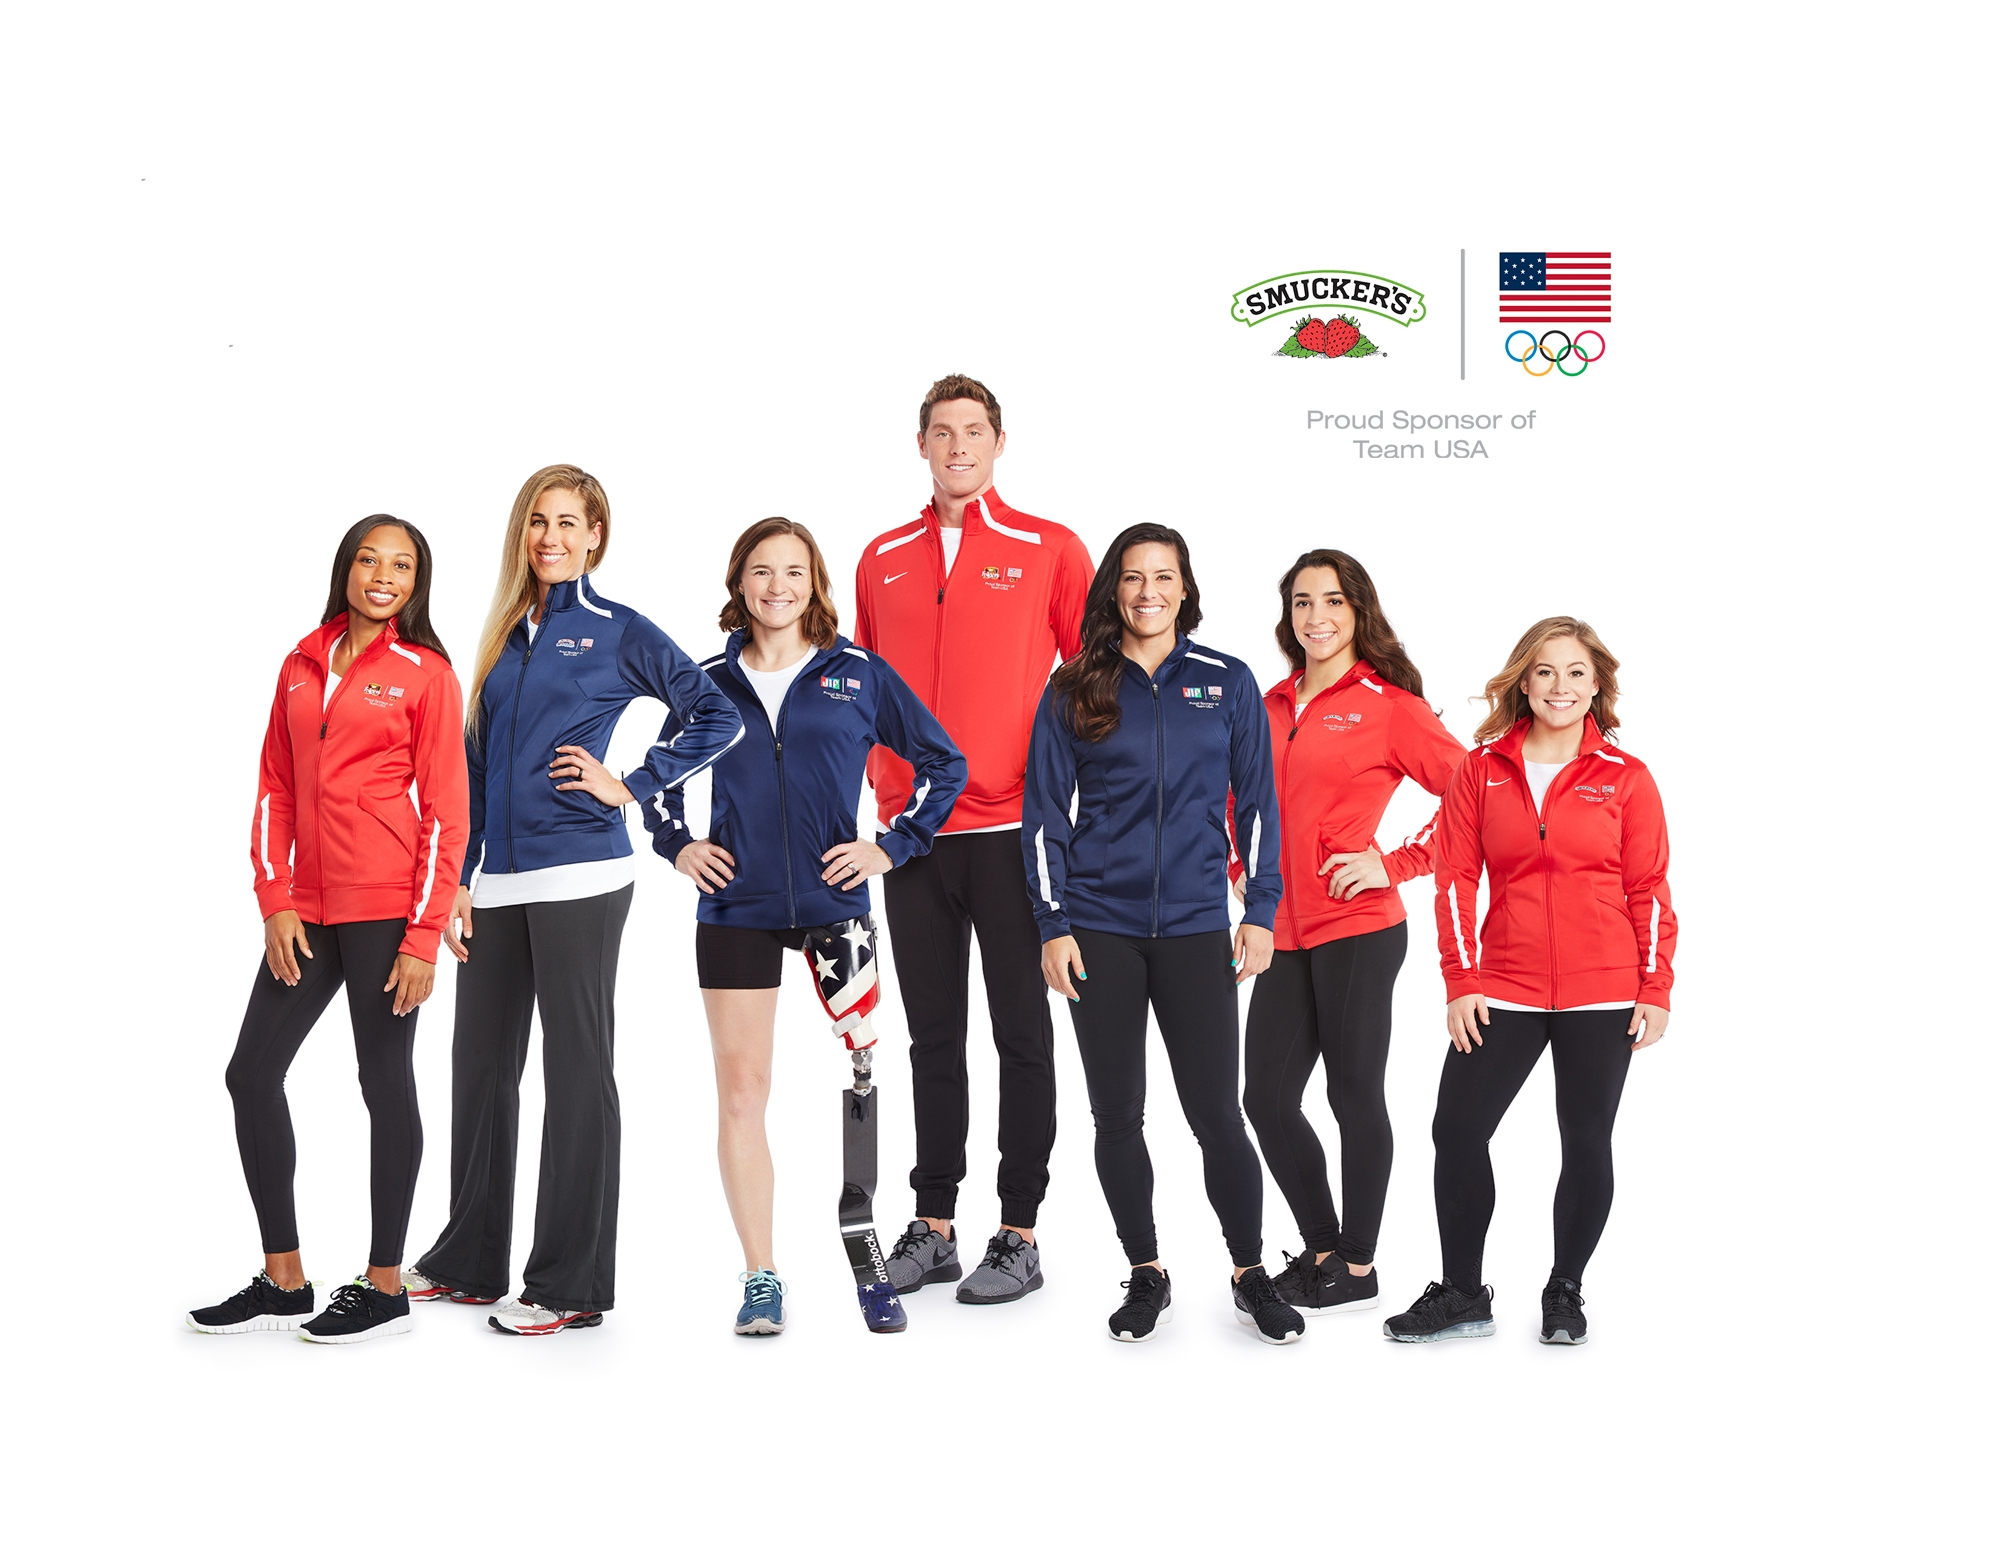 jms-partner-athletes-go-usa